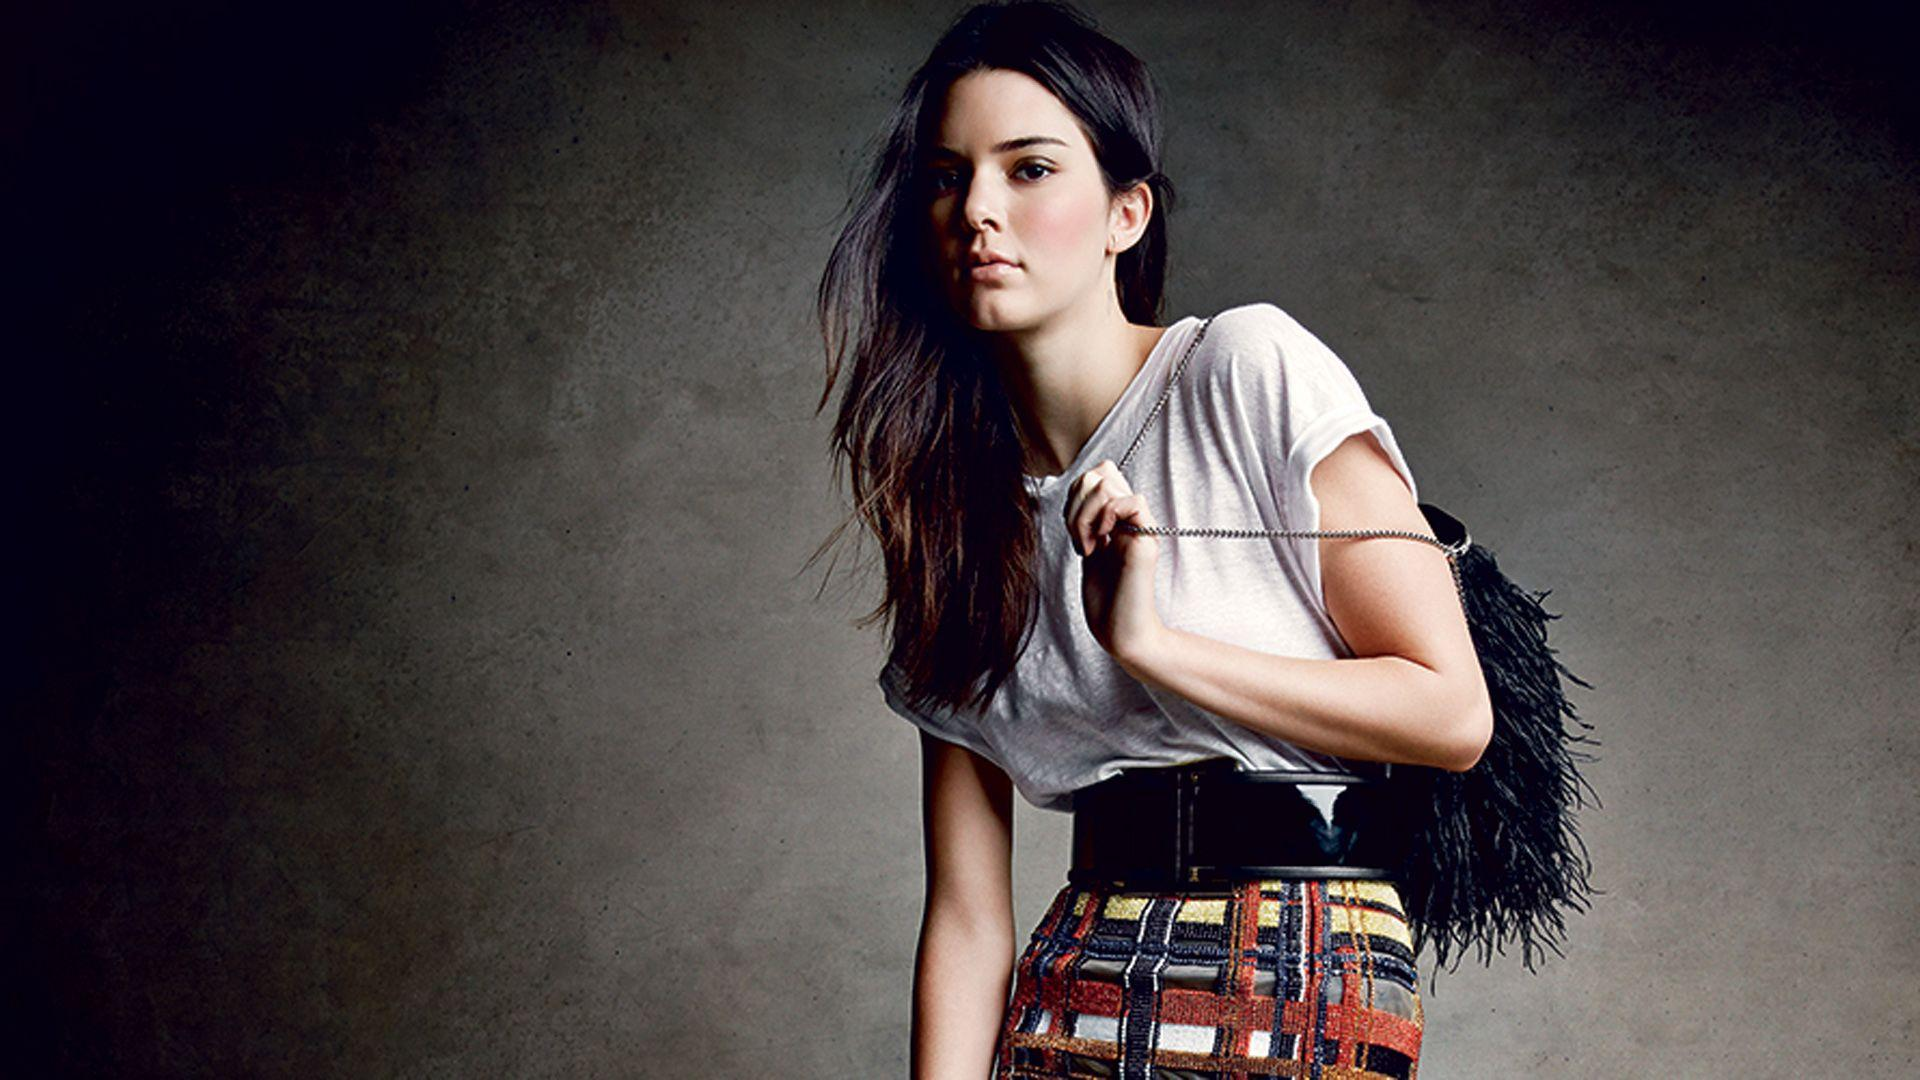 Kendall Jenner Wallpapers Wallpapers